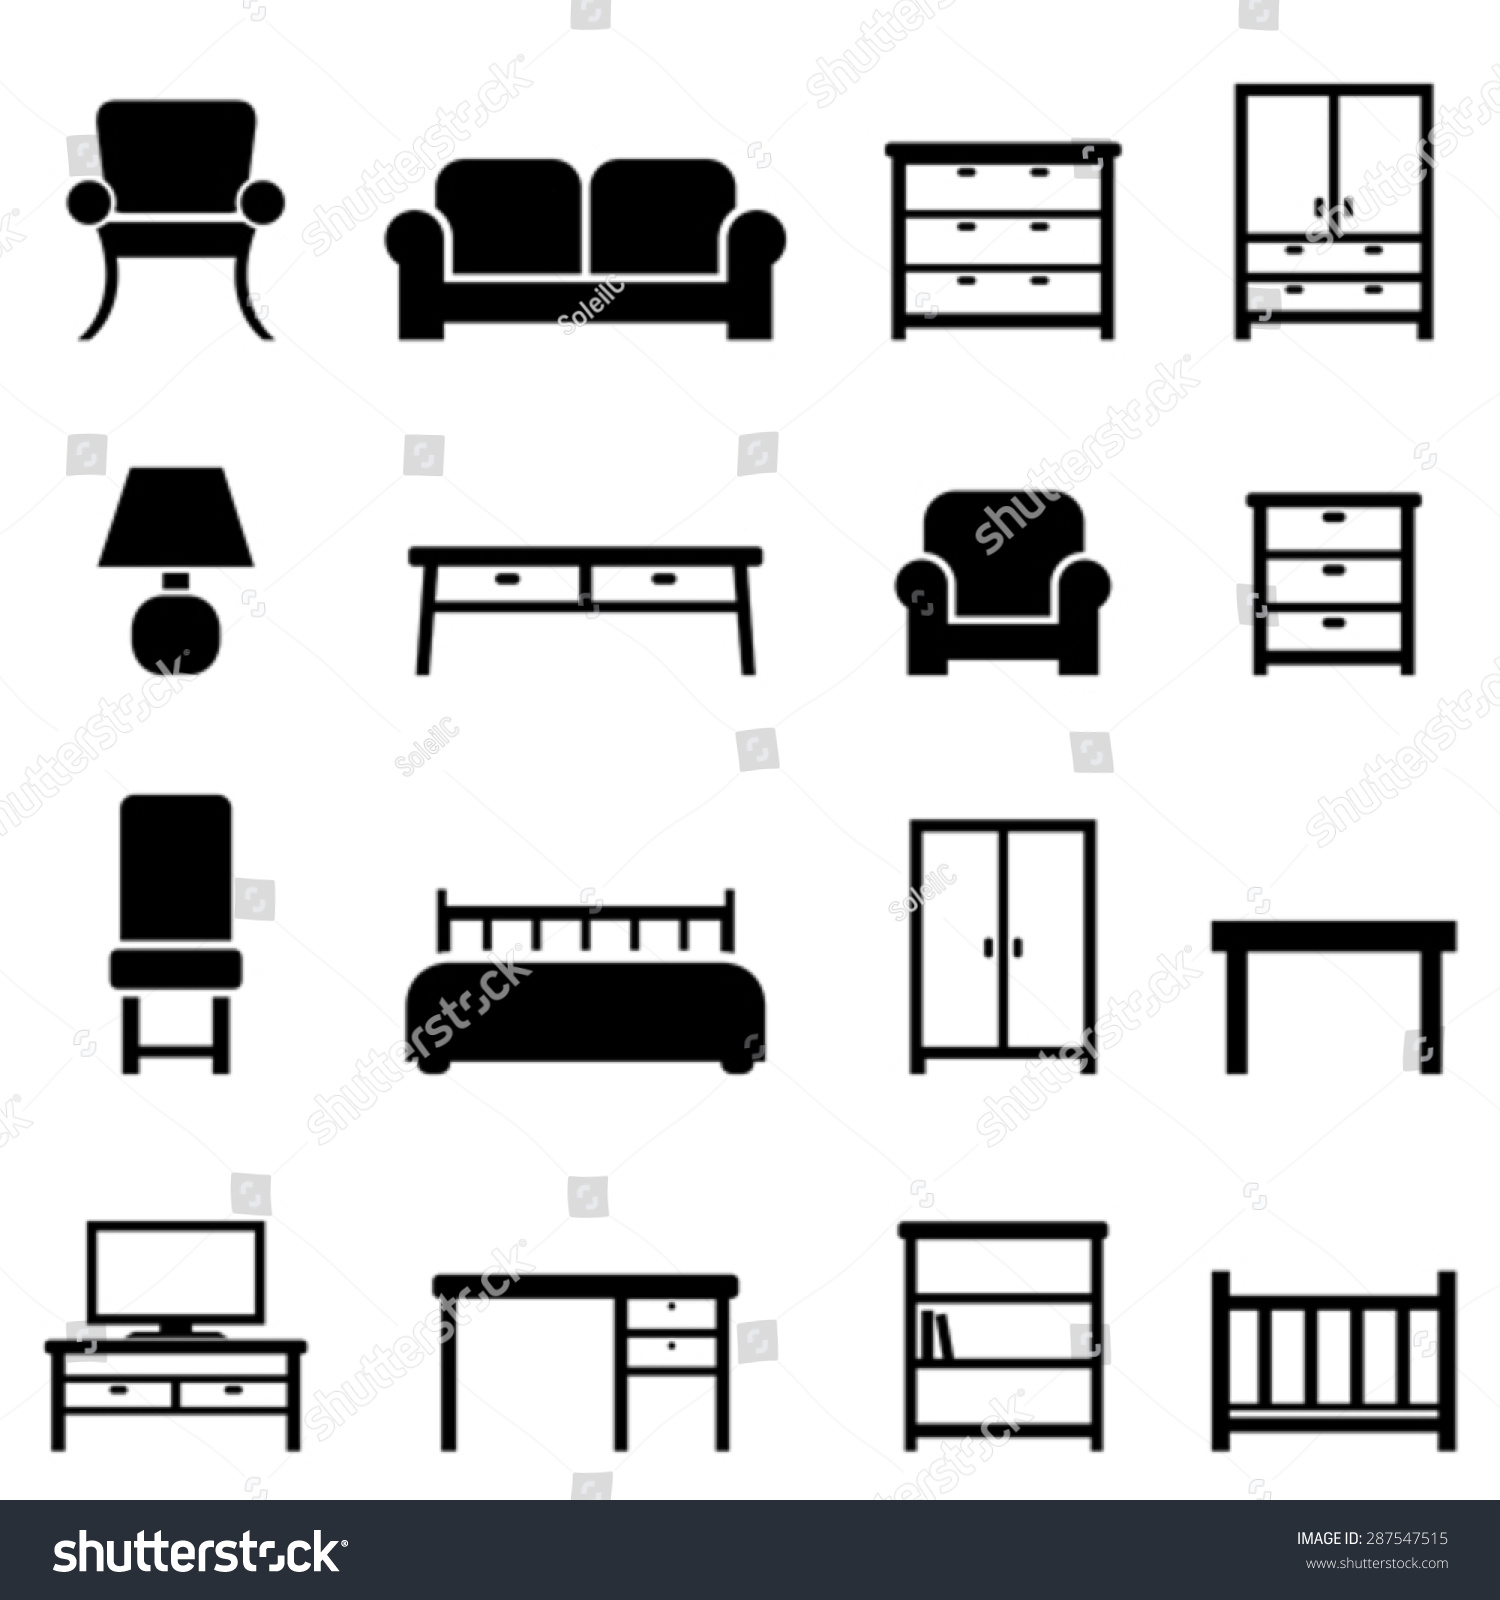 Home Decor Furniture Icon Set Stock Vector 287547515